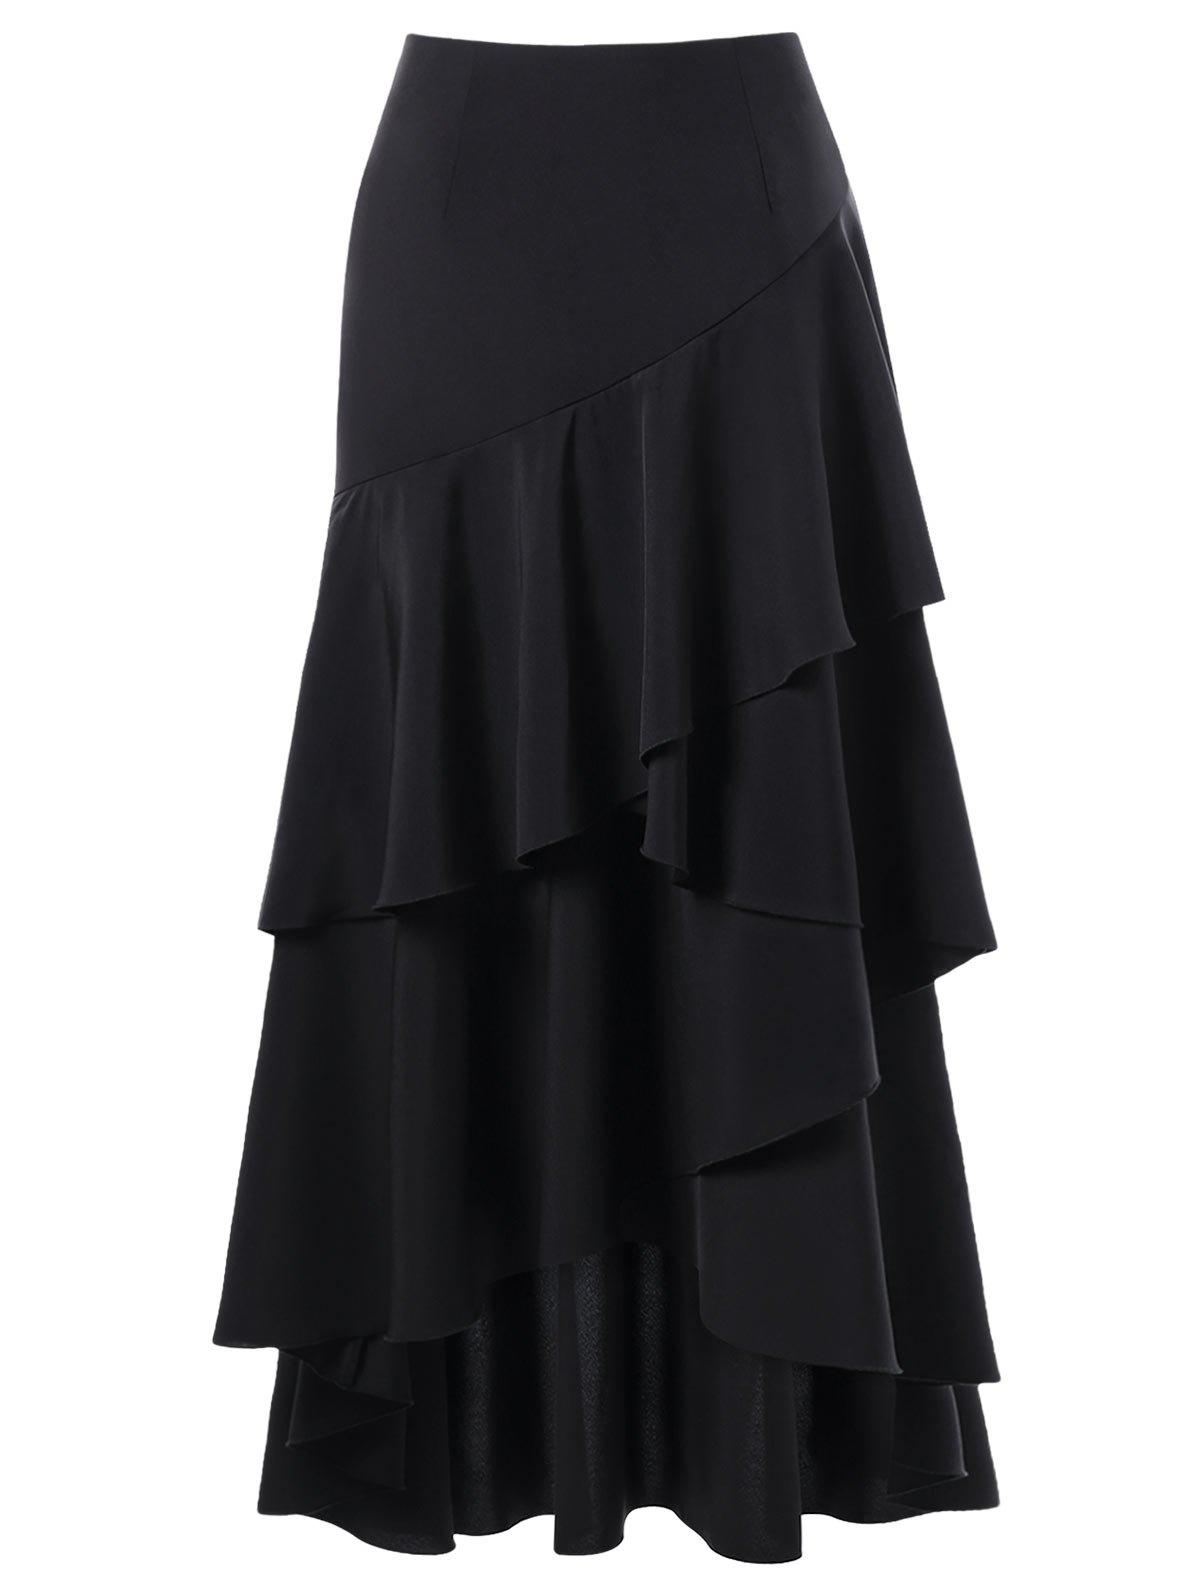 Martina Flounced Maxi SkirtWOMEN<br><br>Size: 2XL; Color: BLACK; Material: Polyester; Length: Ankle-Length; Silhouette: A-Line; Pattern Type: Solid; Embellishment: Zippers; Season: Fall,Spring; Weight: 0.4000kg; Package Contents: 1 x Skirt;